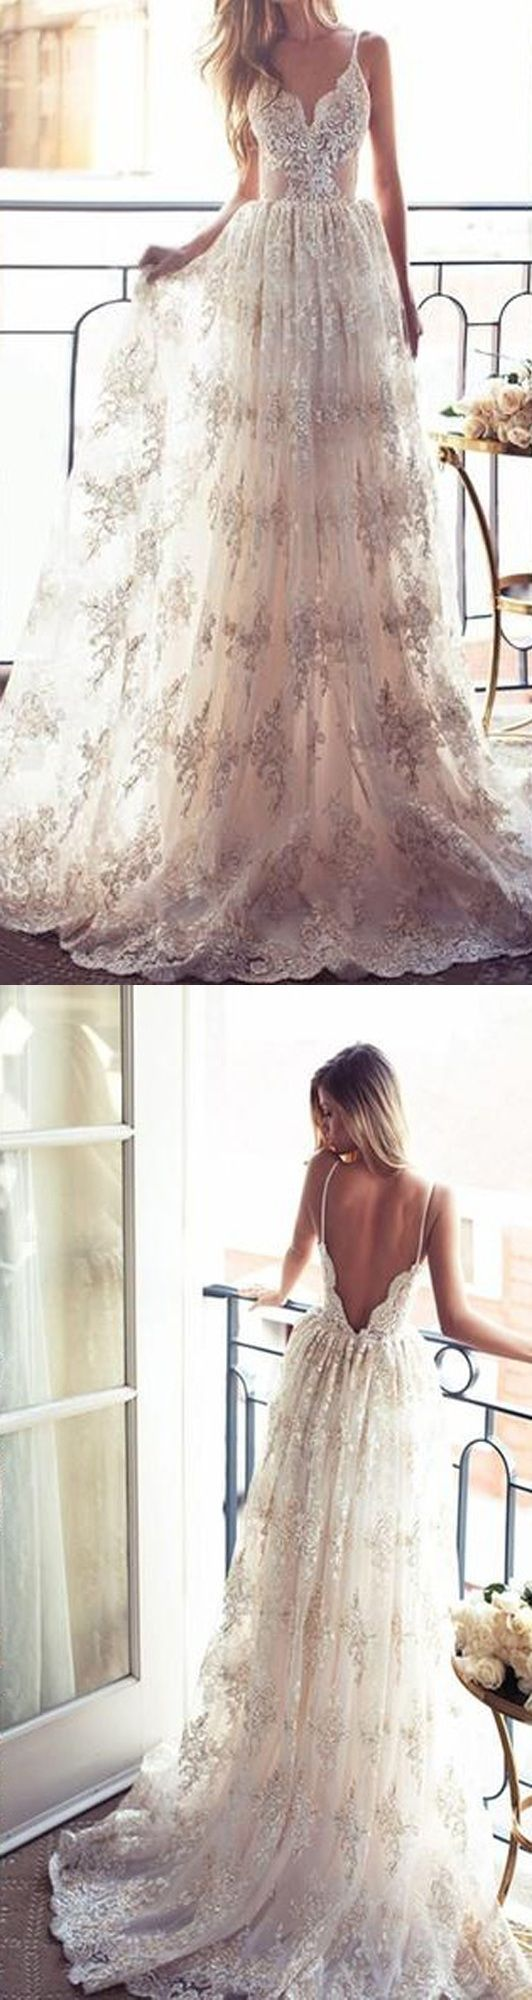 2017 A-line Long Spaghetti V-Neck Sexy Lace Wedding Dress,Chic Appliques Bridal Gown,Party Dress,Wedding Evening Dress